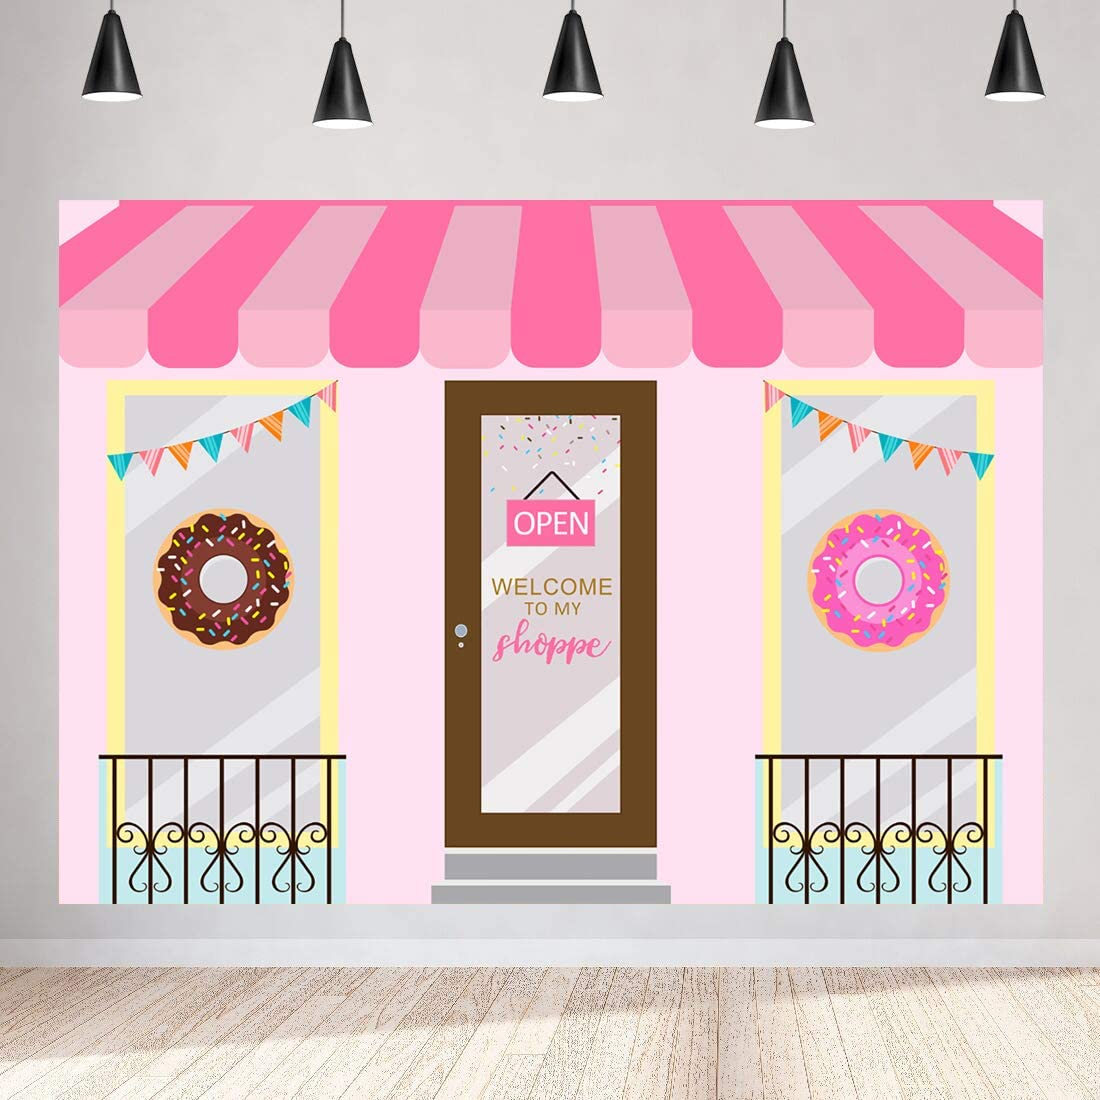 Donut Birthday Theme Backdrop 7x5ft Dessert Shop Photography Backdrops Pink Cartoon Background for Baby Shower Photo Banner Vinyl Party Decorations